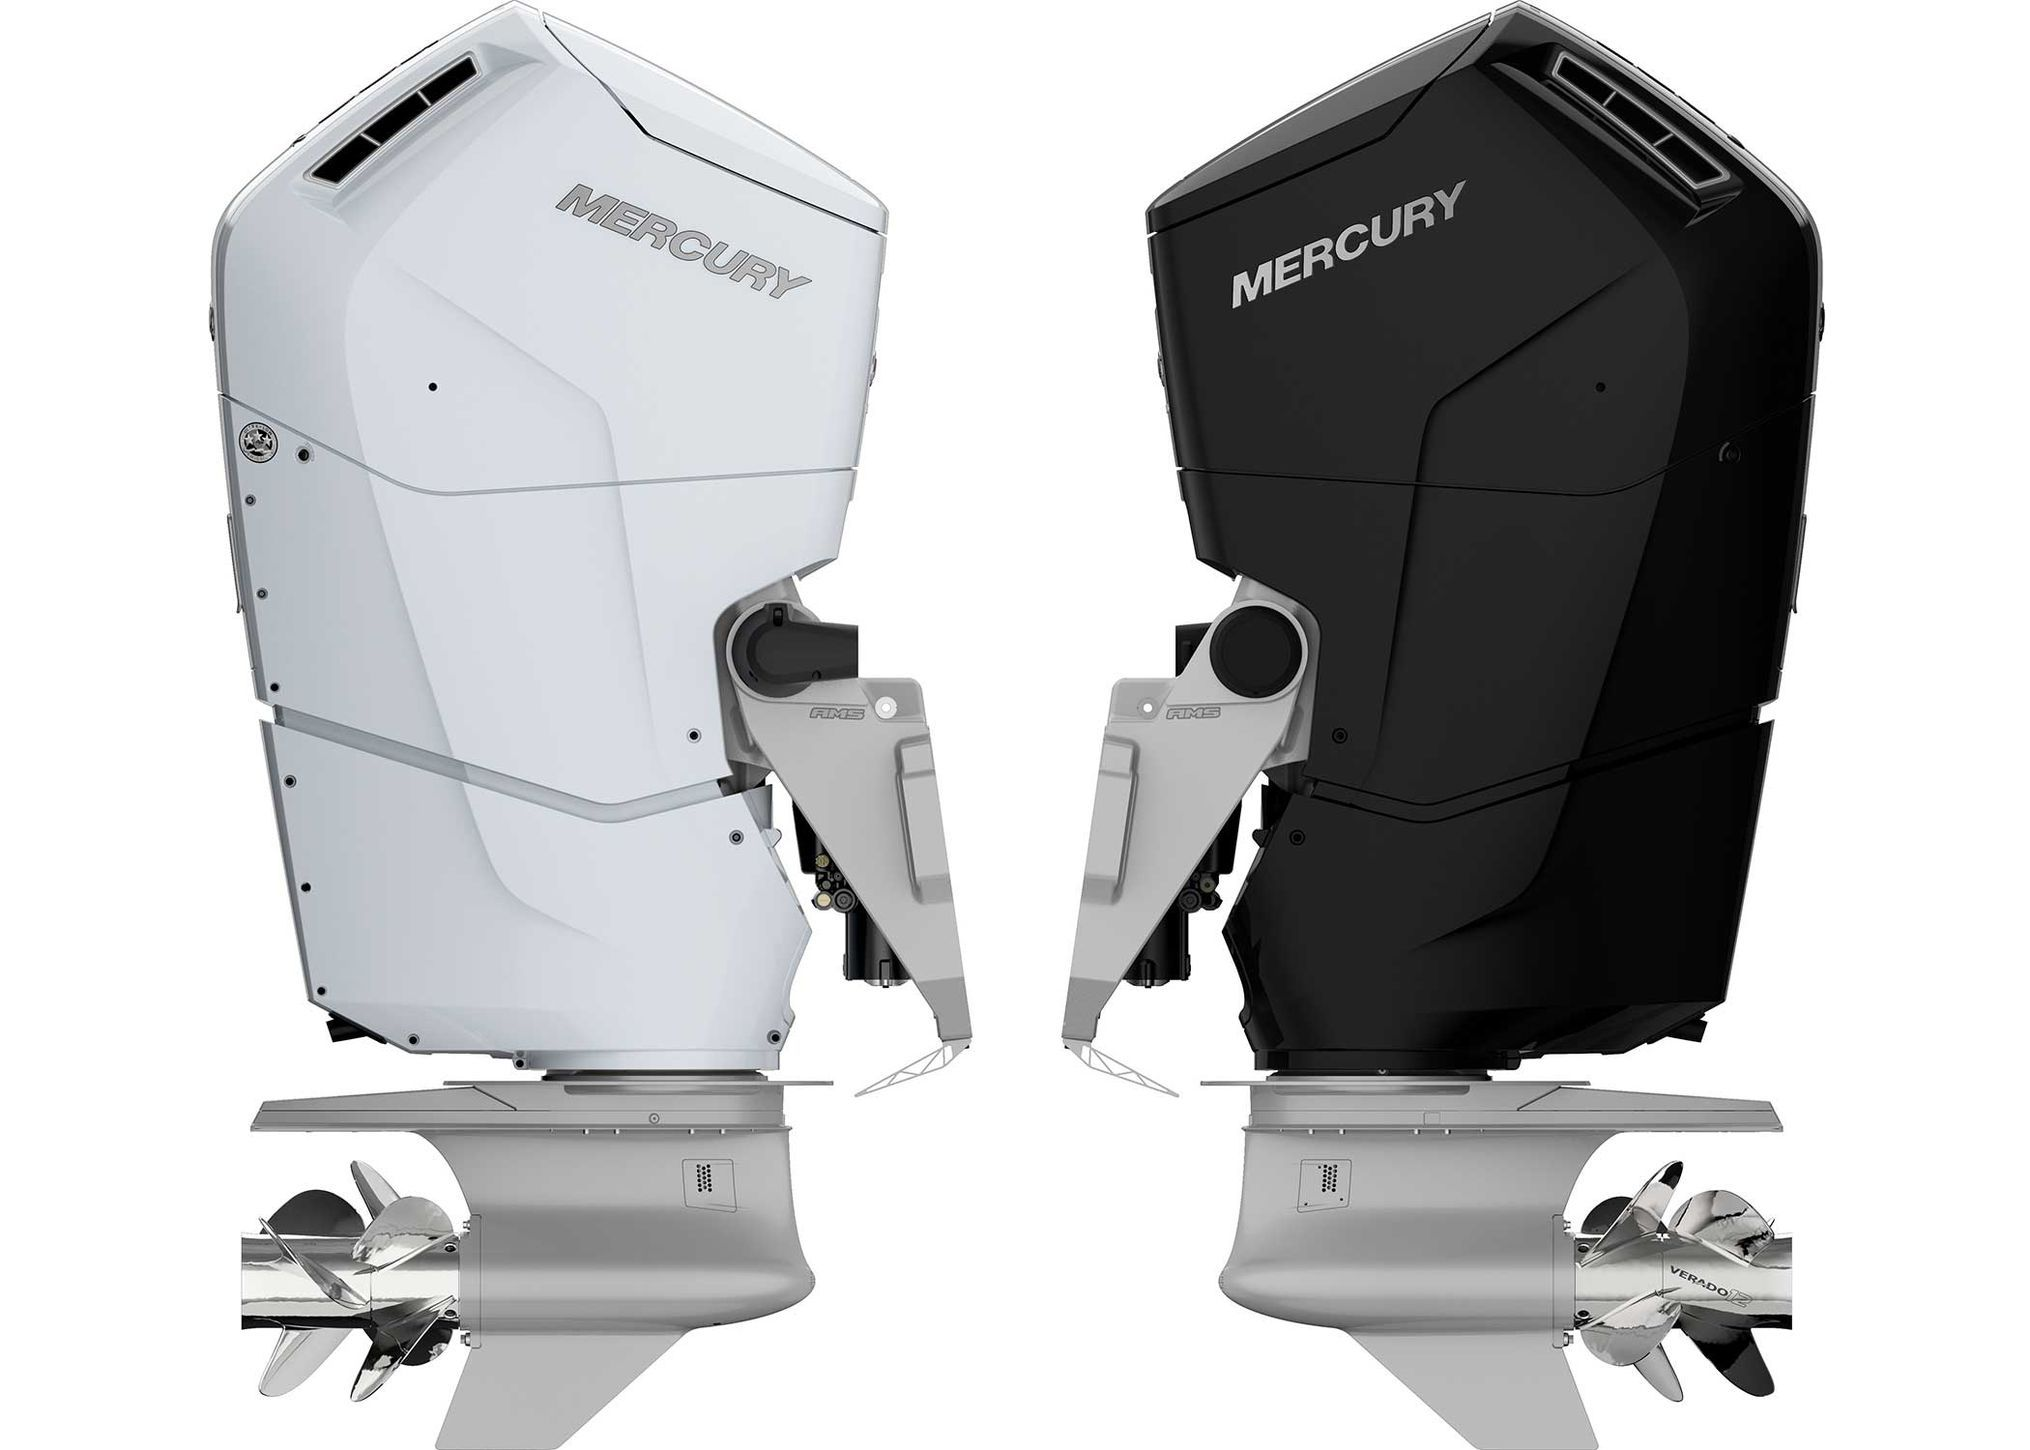 The V12 Verado will be available in black and three shades of white to best match your hull color.